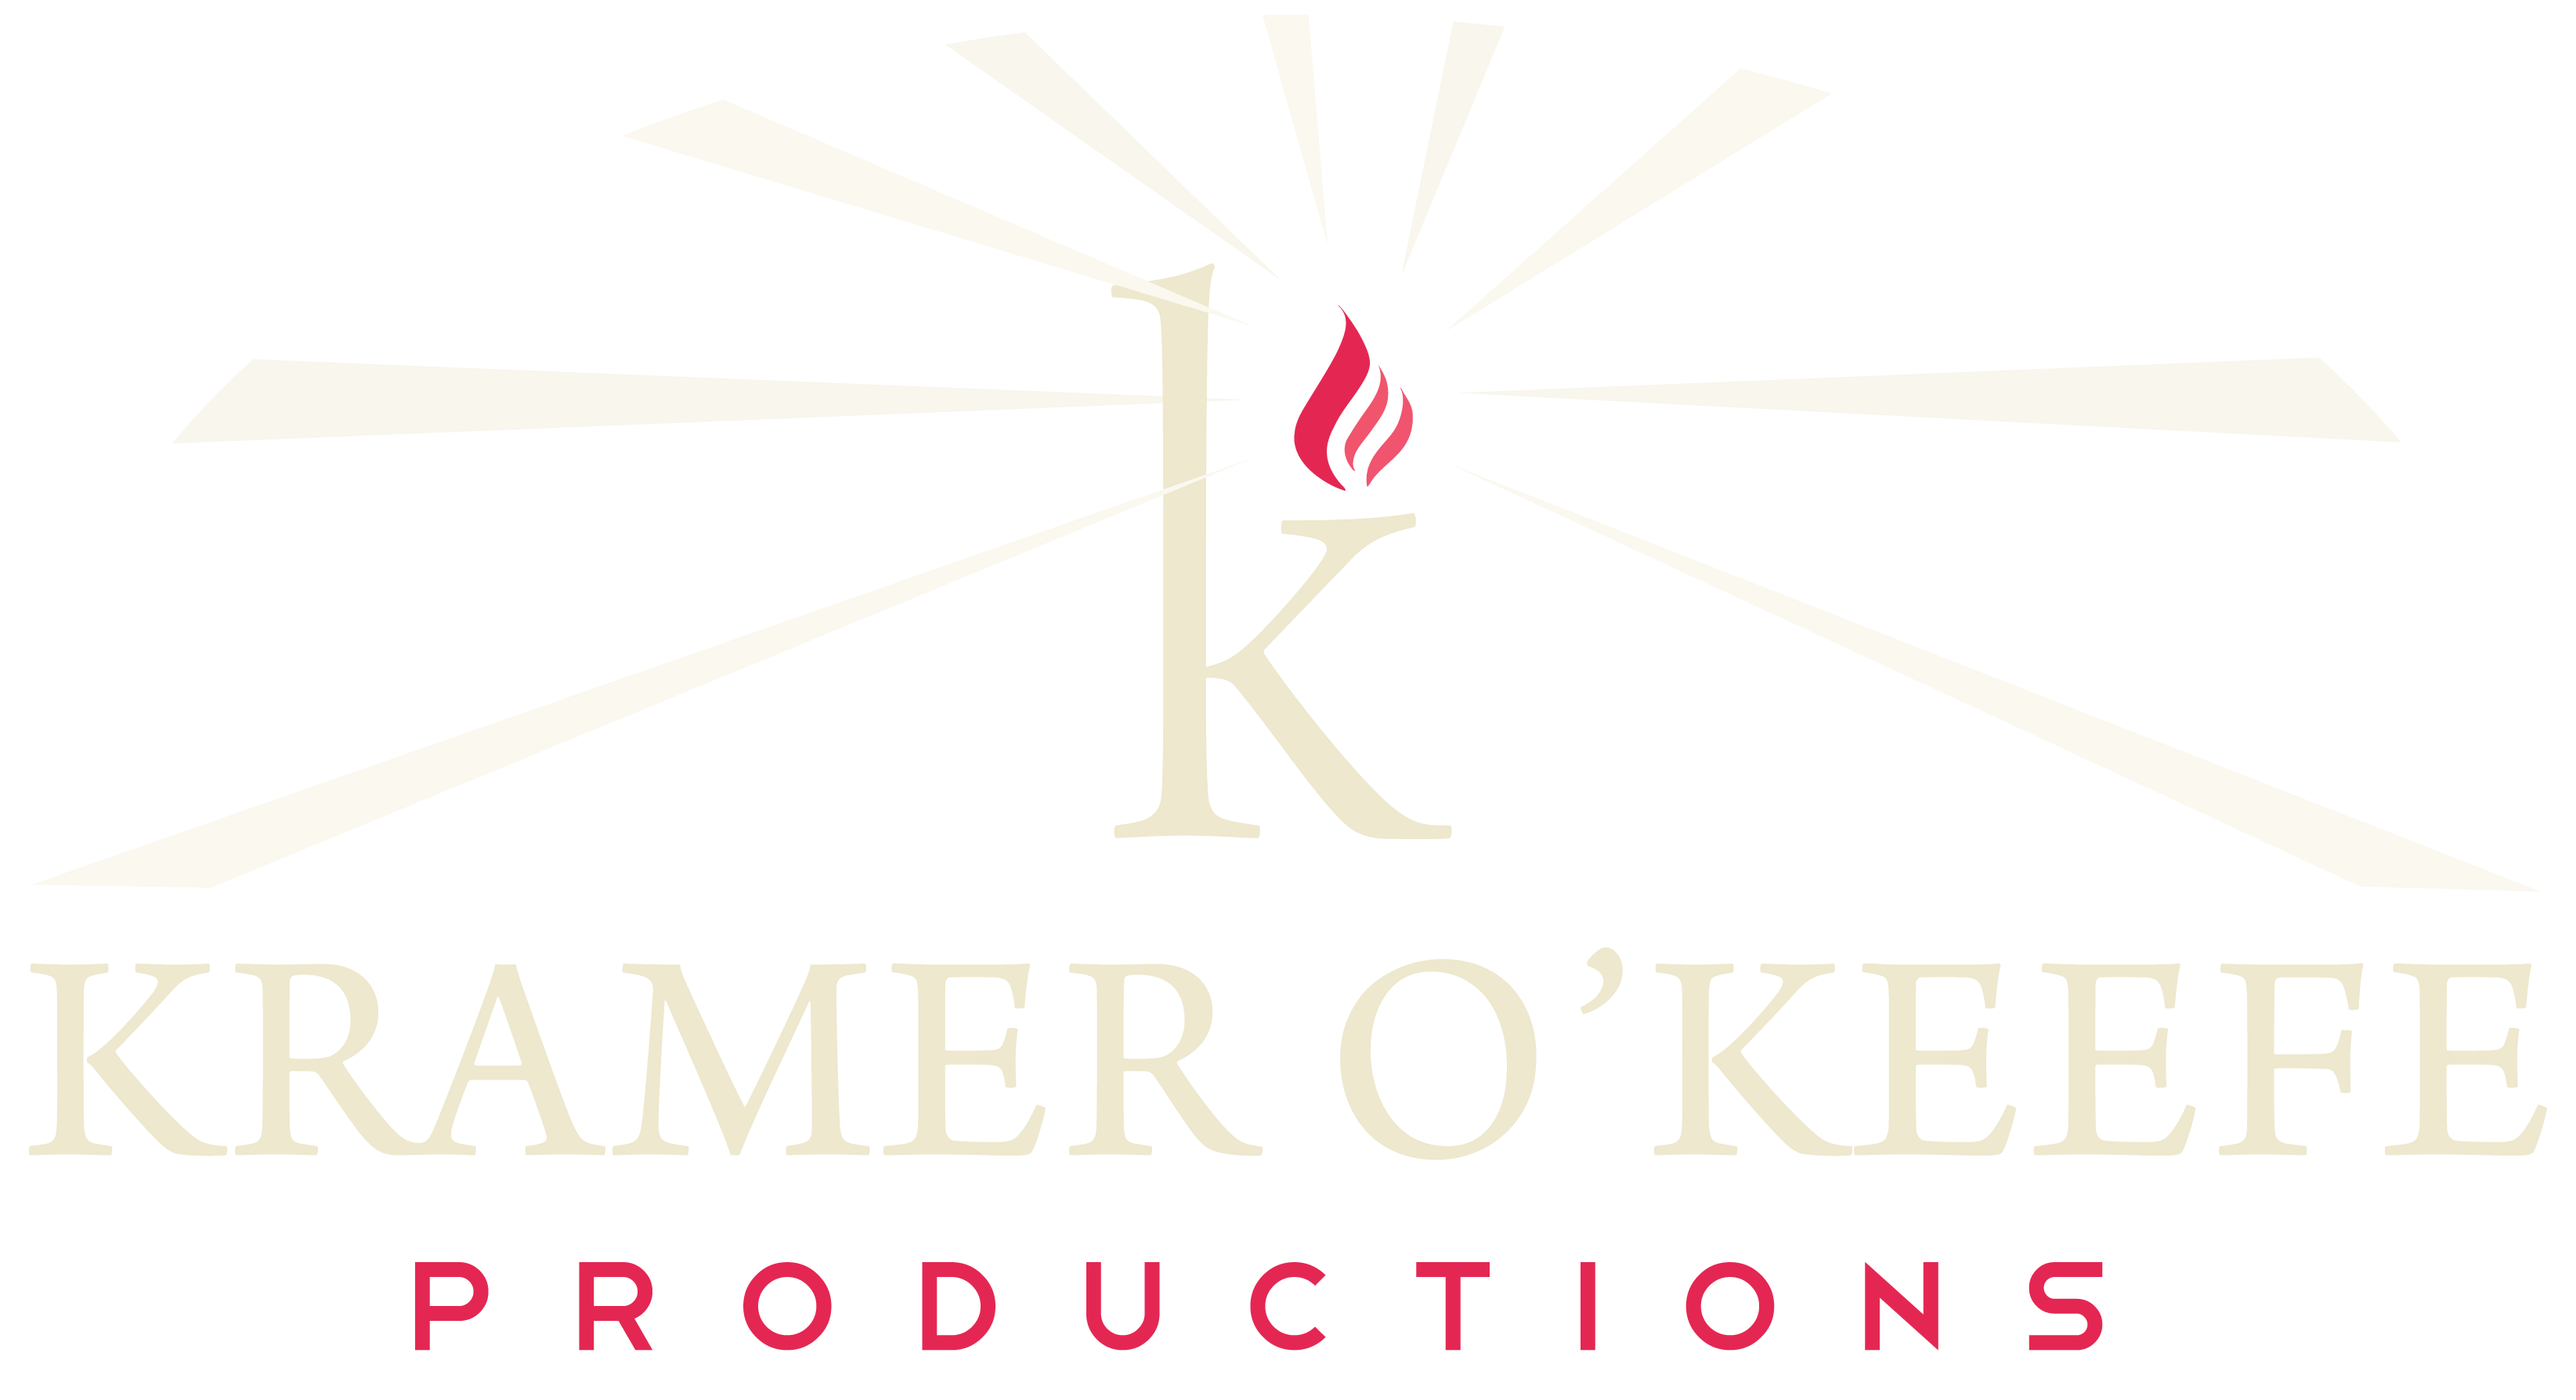 Kramer OKeefe Productions